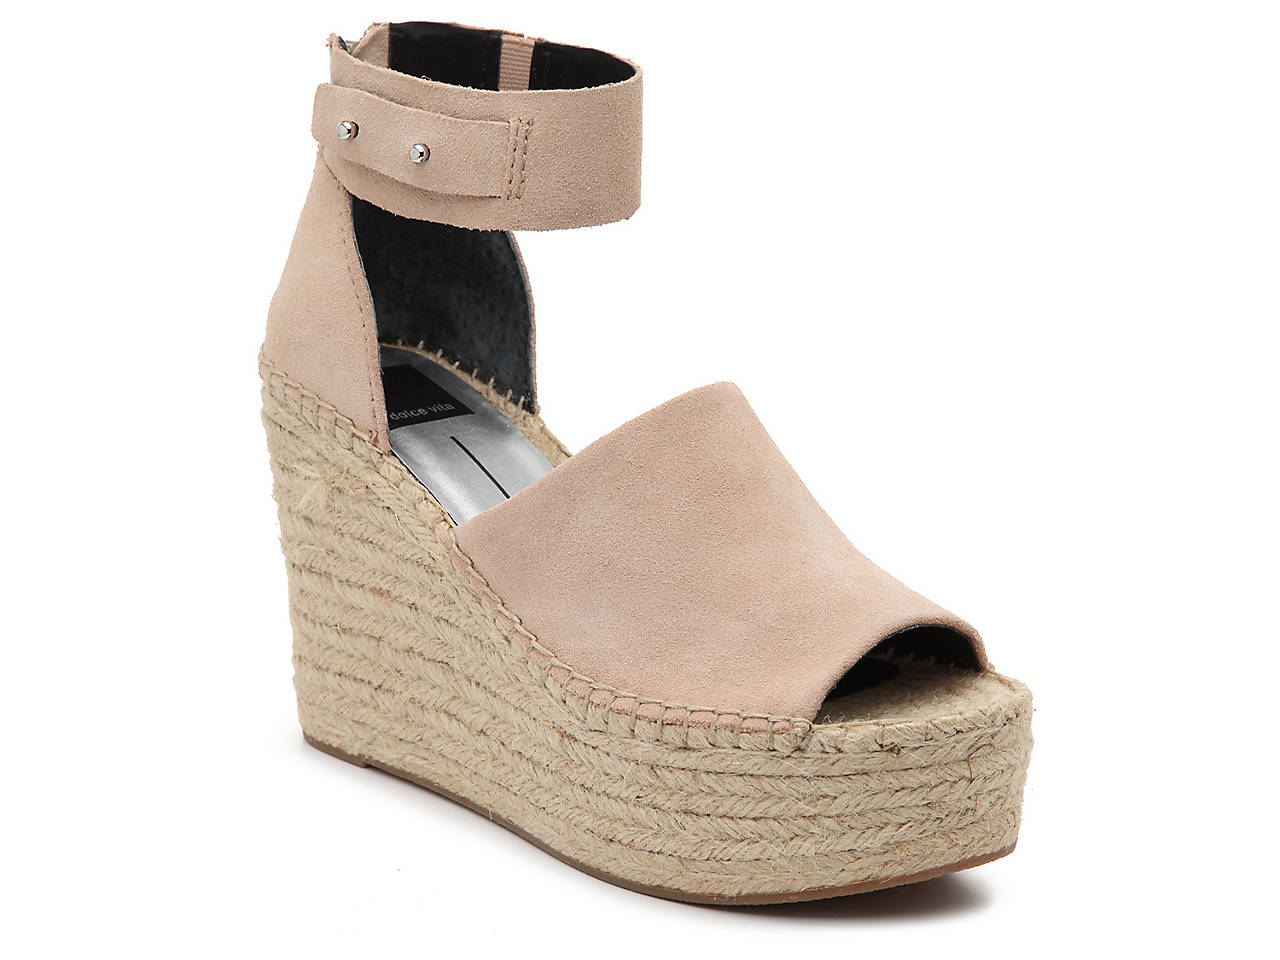 d559ed359d8 Dolce Vita Straw Espadrille Wedge Sandal Women s Shoes